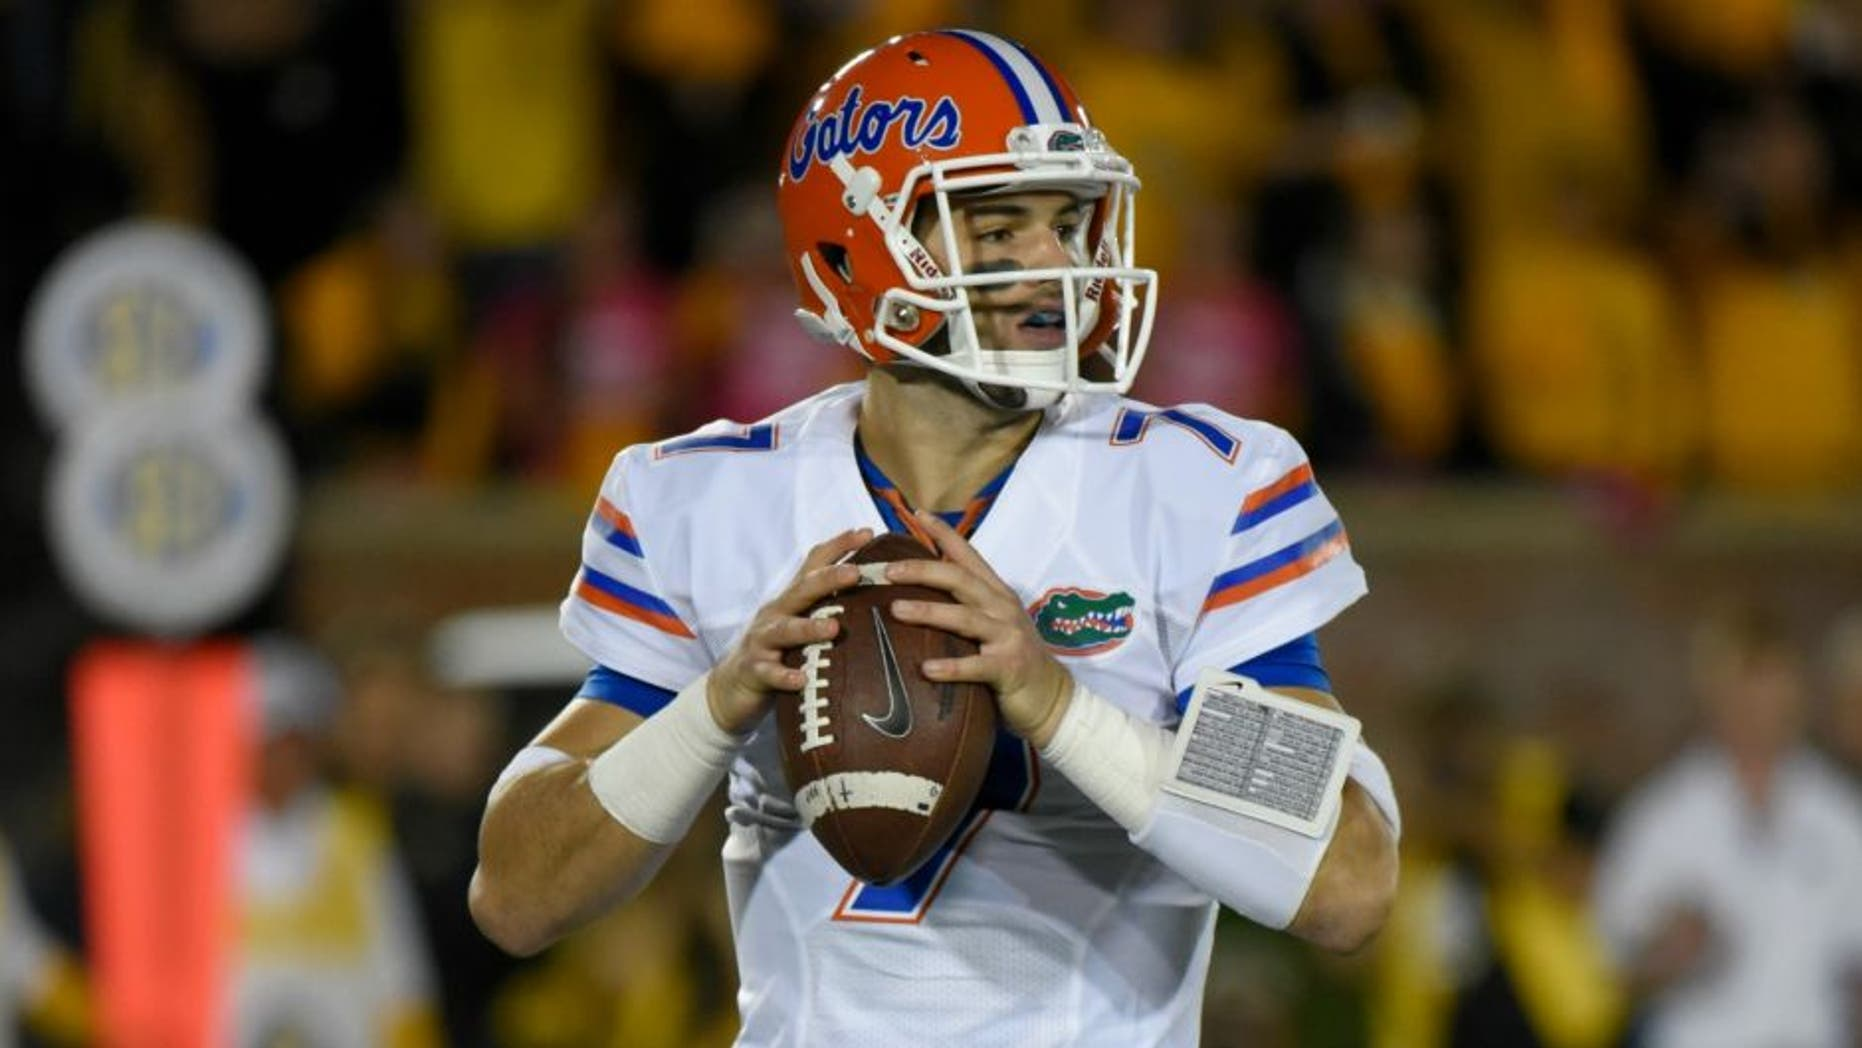 COLUMBIA , MO - OCTOBER 10: Quarterback Will Grier #7 of the Florida Gators drops back for a pass against the Missouri Tigers at Memorial Stadium on October 10, 2015 in Columbia, Missouri. (Photo by Ed Zurga/Getty Images) *** Local Caption *** Will Grier,COLUMBIA , MO - OCTOBER 10: Quarterback Will Grier #7 of the Florida Gators drops back for a pass against the Missouri Tigers at Memorial Stadium on October 10, 2015 in Columbia, Missouri. (Photo by Ed Zurga/Getty Images)